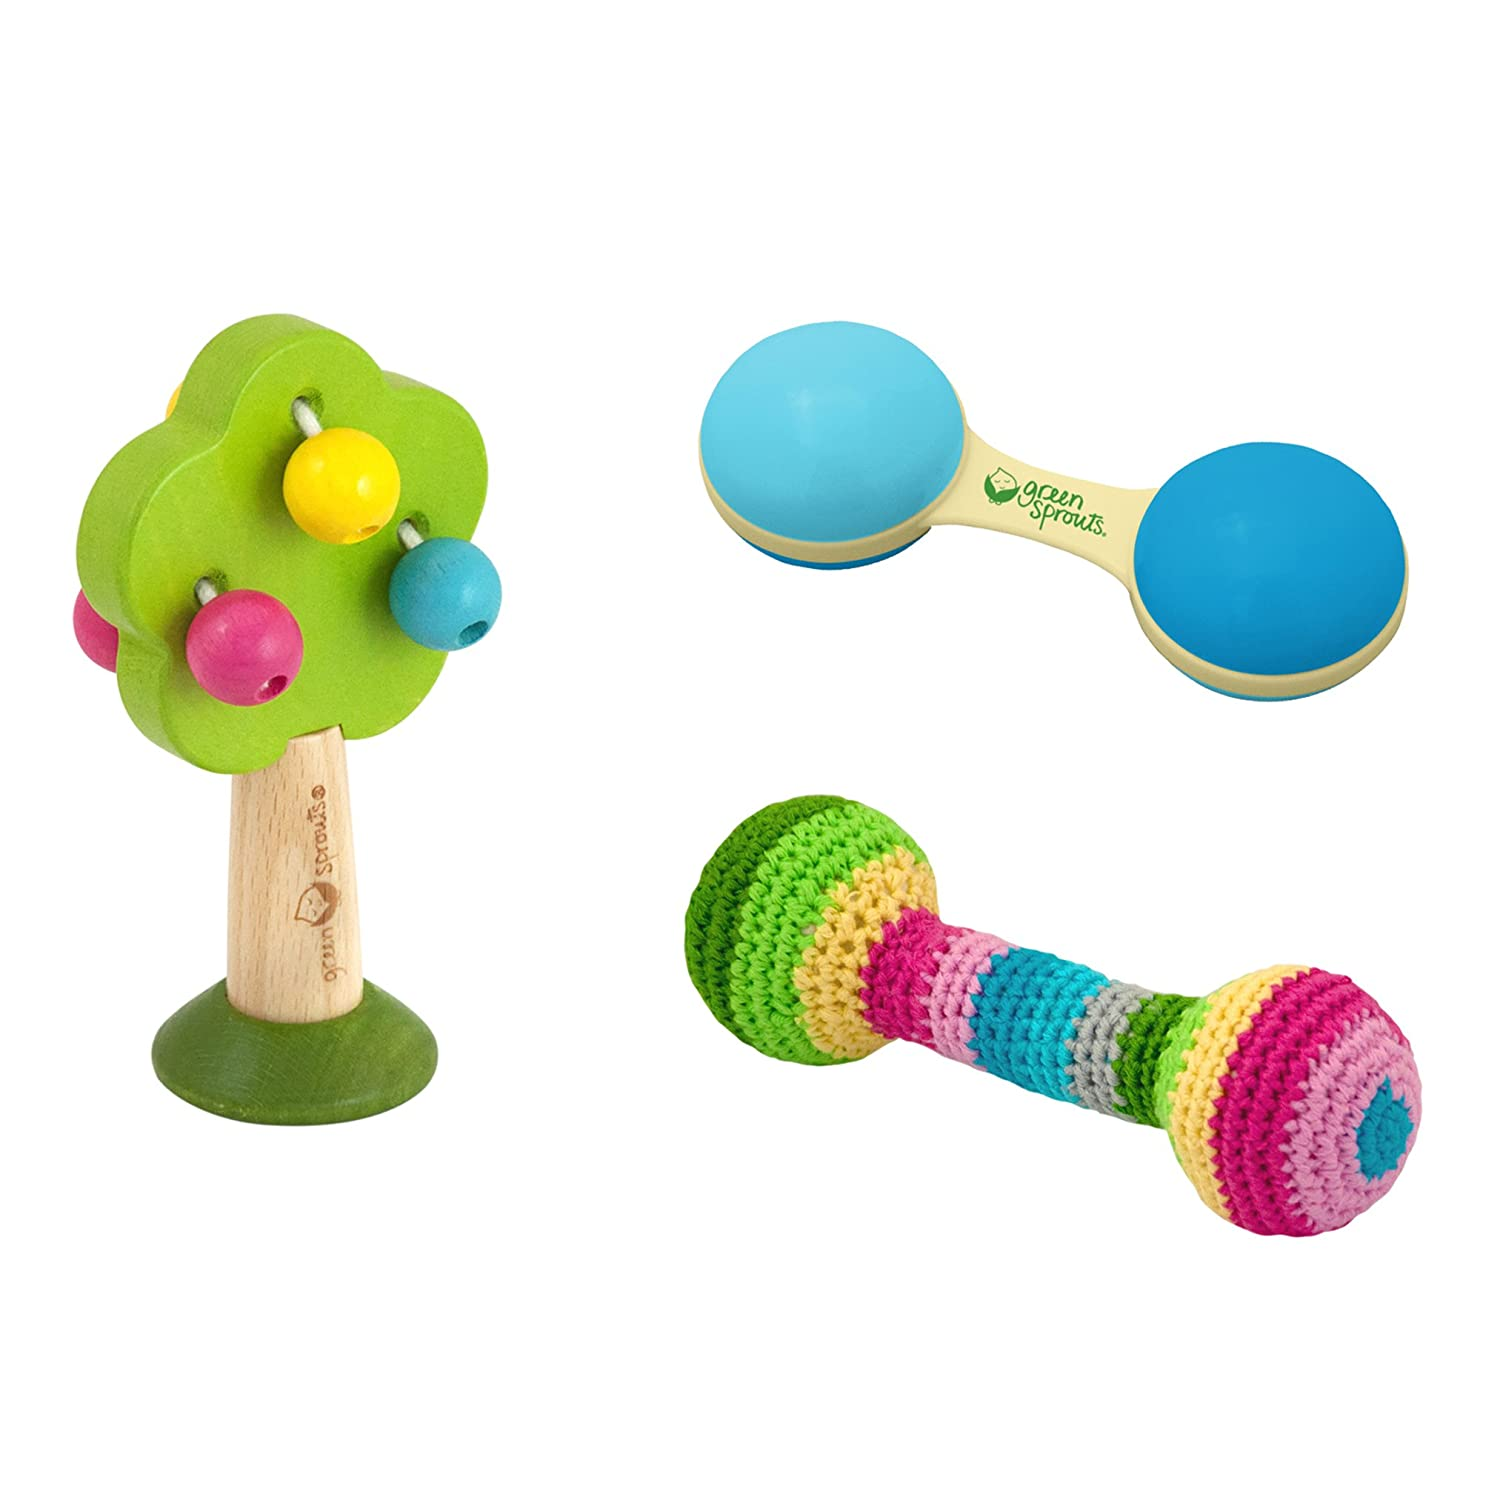 243371-920-33 Multicolor i play green sprouts Plant-based Rattle Set